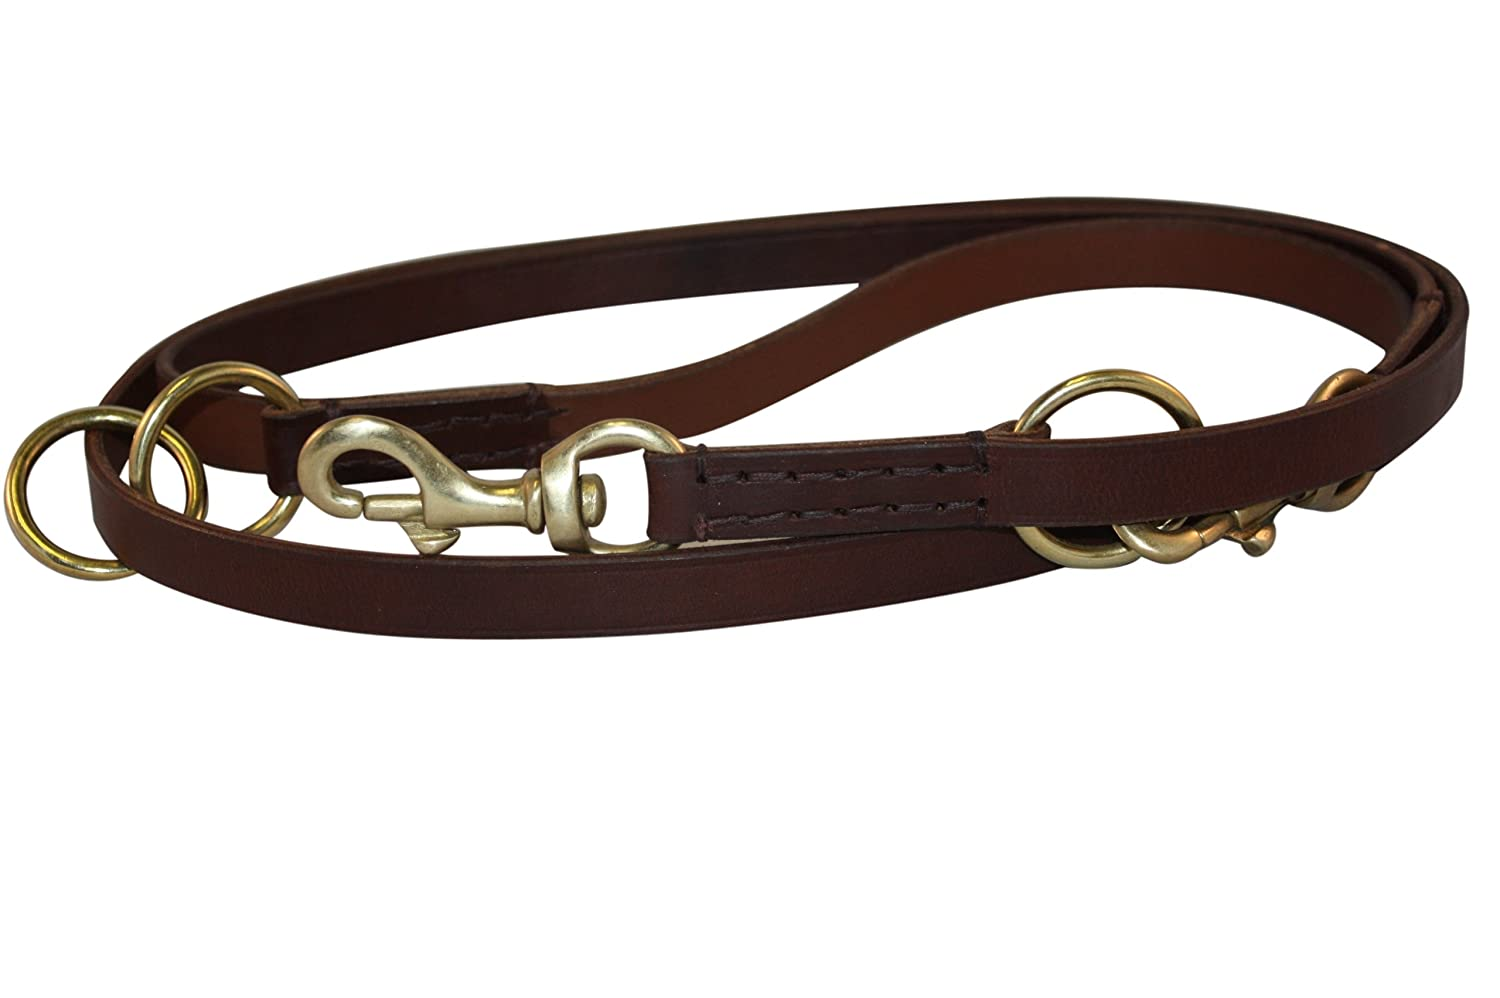 Leather Multi-Function Leash, 7' x 3/4, Brown, 100% Genuine Bridle Leather. Multiple uses: 4, 5 or 6 Foot Leash/Walk your dog hands-free/Walk 2 dogs 7' x 3/4 Angel Pet Supplies Inc. 40031